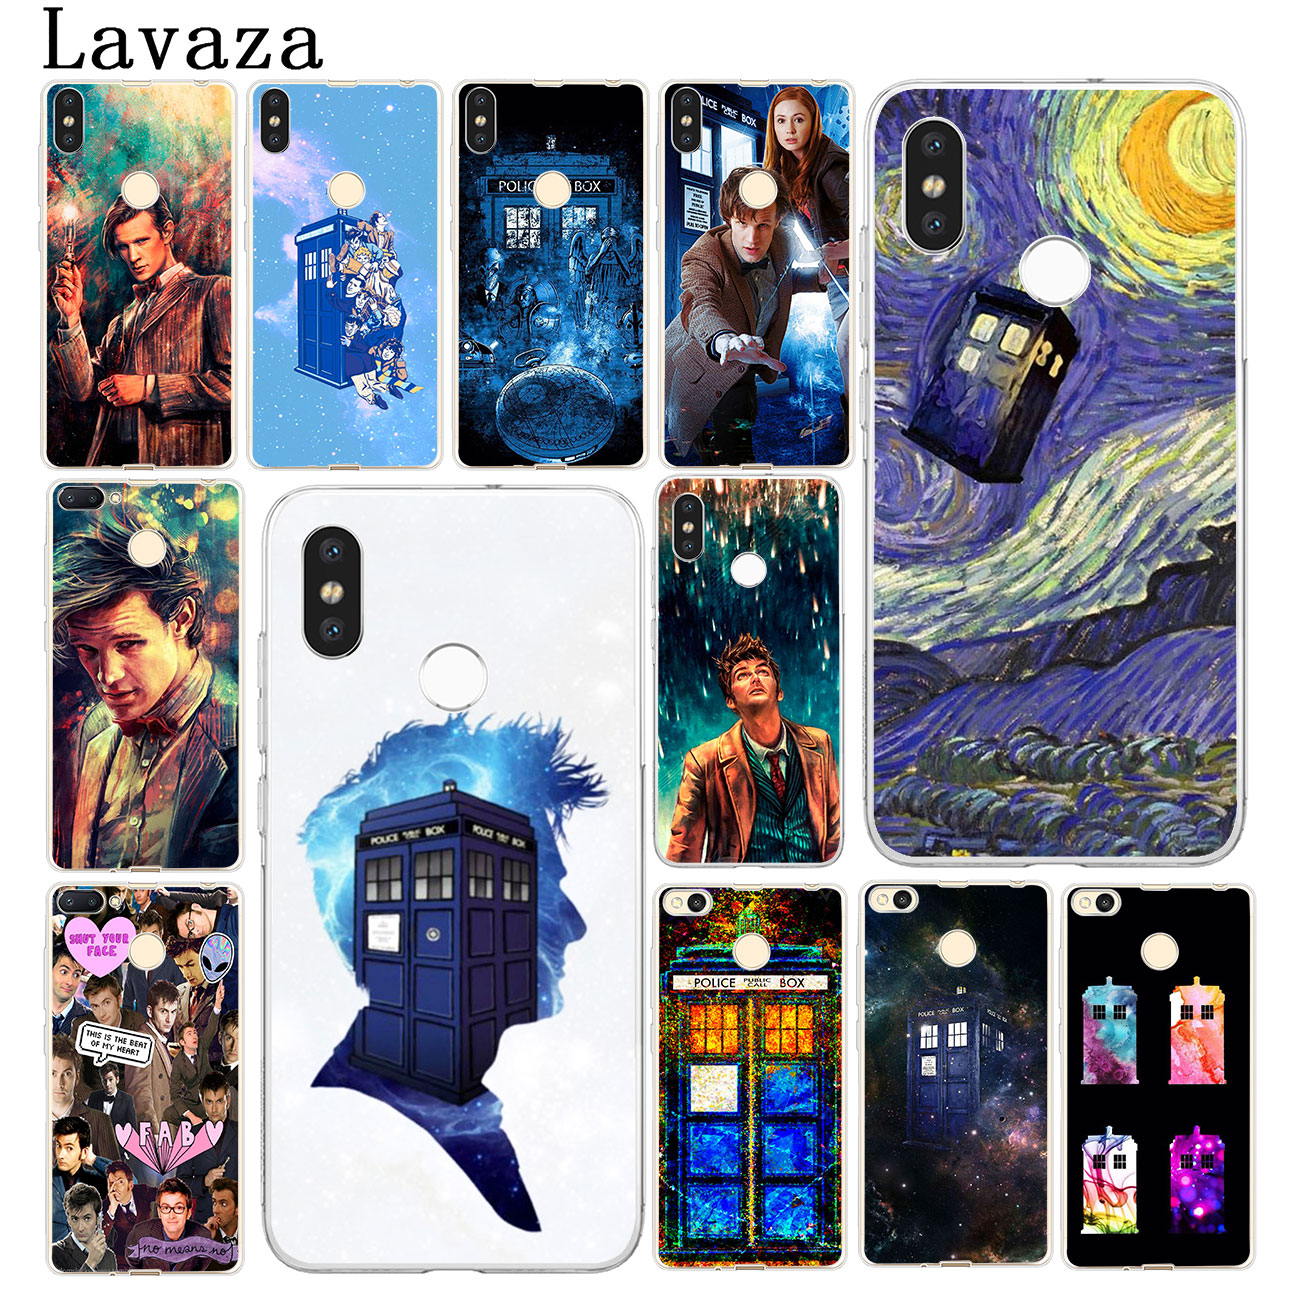 Cellphones & Telecommunications Tardis Box Doctor Who Cover Soft Silicone Tpu Case For Xiaomi Redmi 3 4x 4a 5 Plus 5a S2 6a 6 Pro Note 7 5 6 4 3 5a